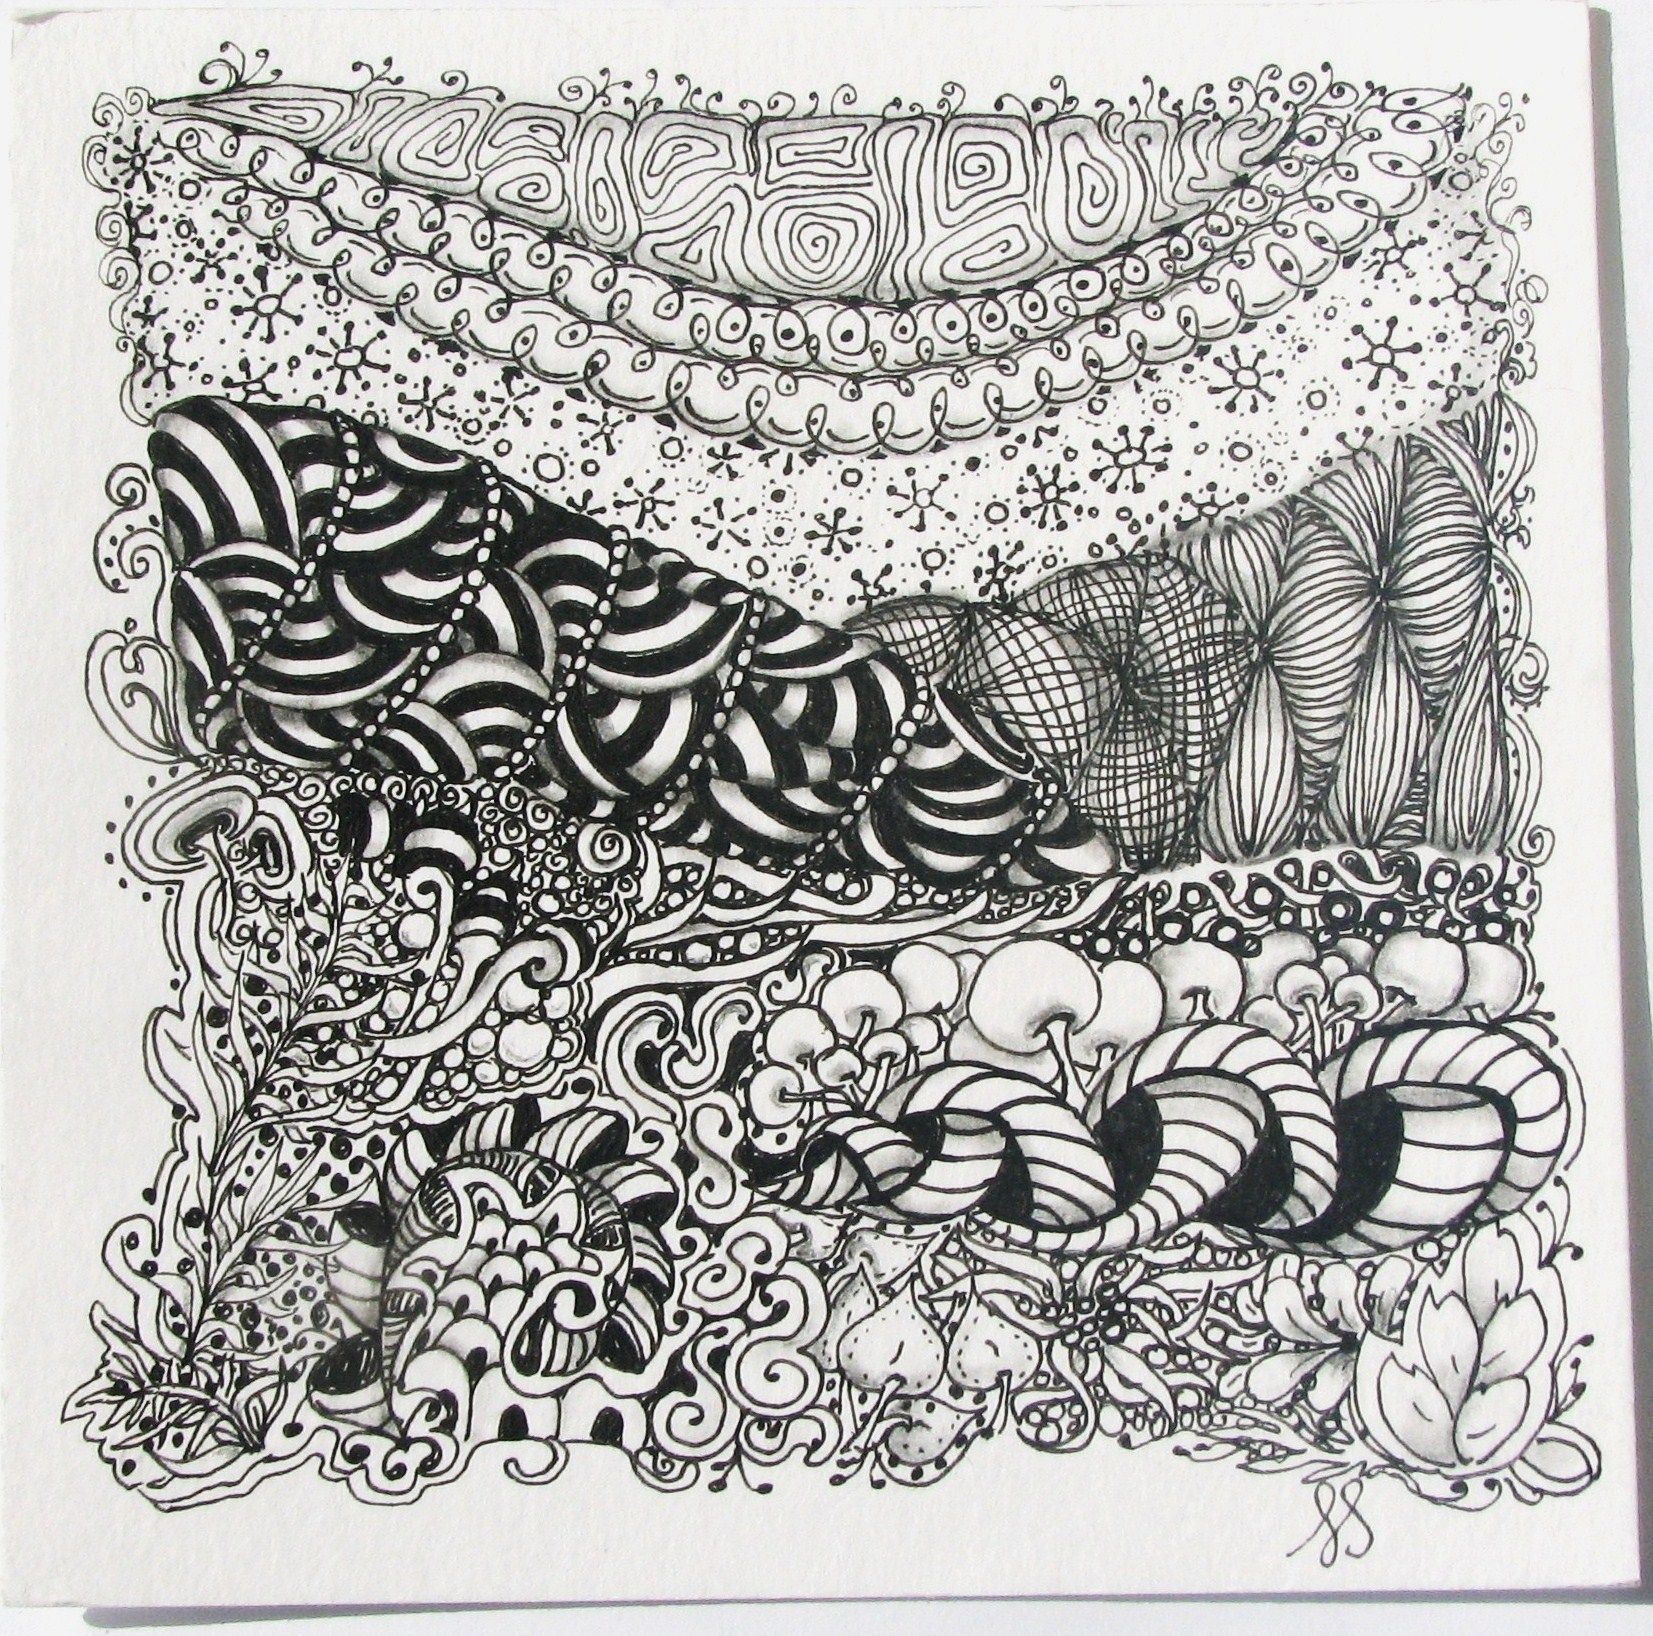 Zentangle tile laurasoriginalart doodling zentangle for Zentangle tile template